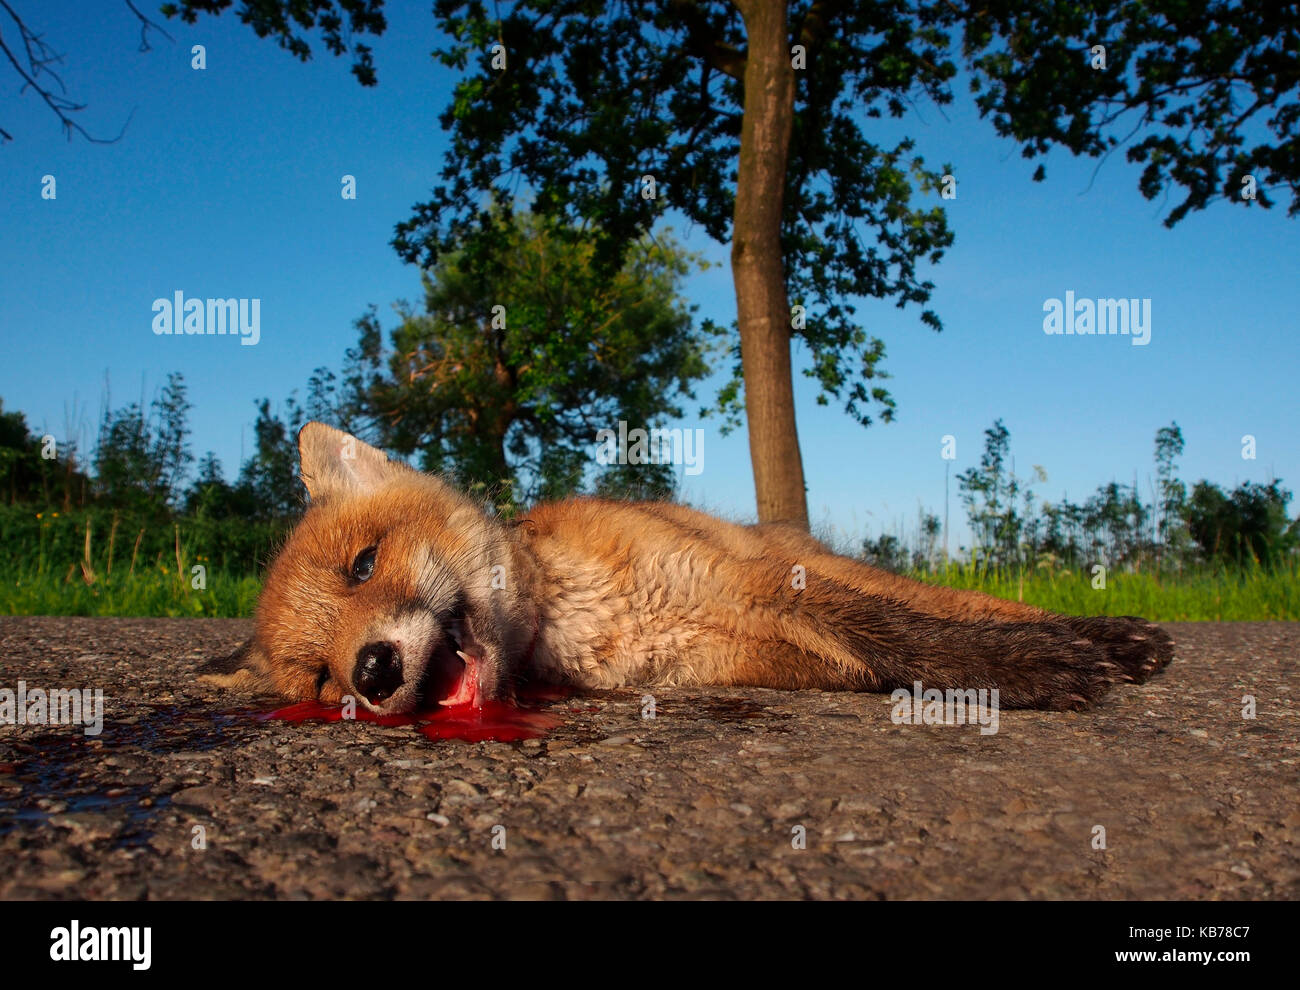 Red Fox (Vulpes vulpes) cub lying dead on a road, probaly hit by a car, The Netherlands, Utrecht, Odijk - Stock Image